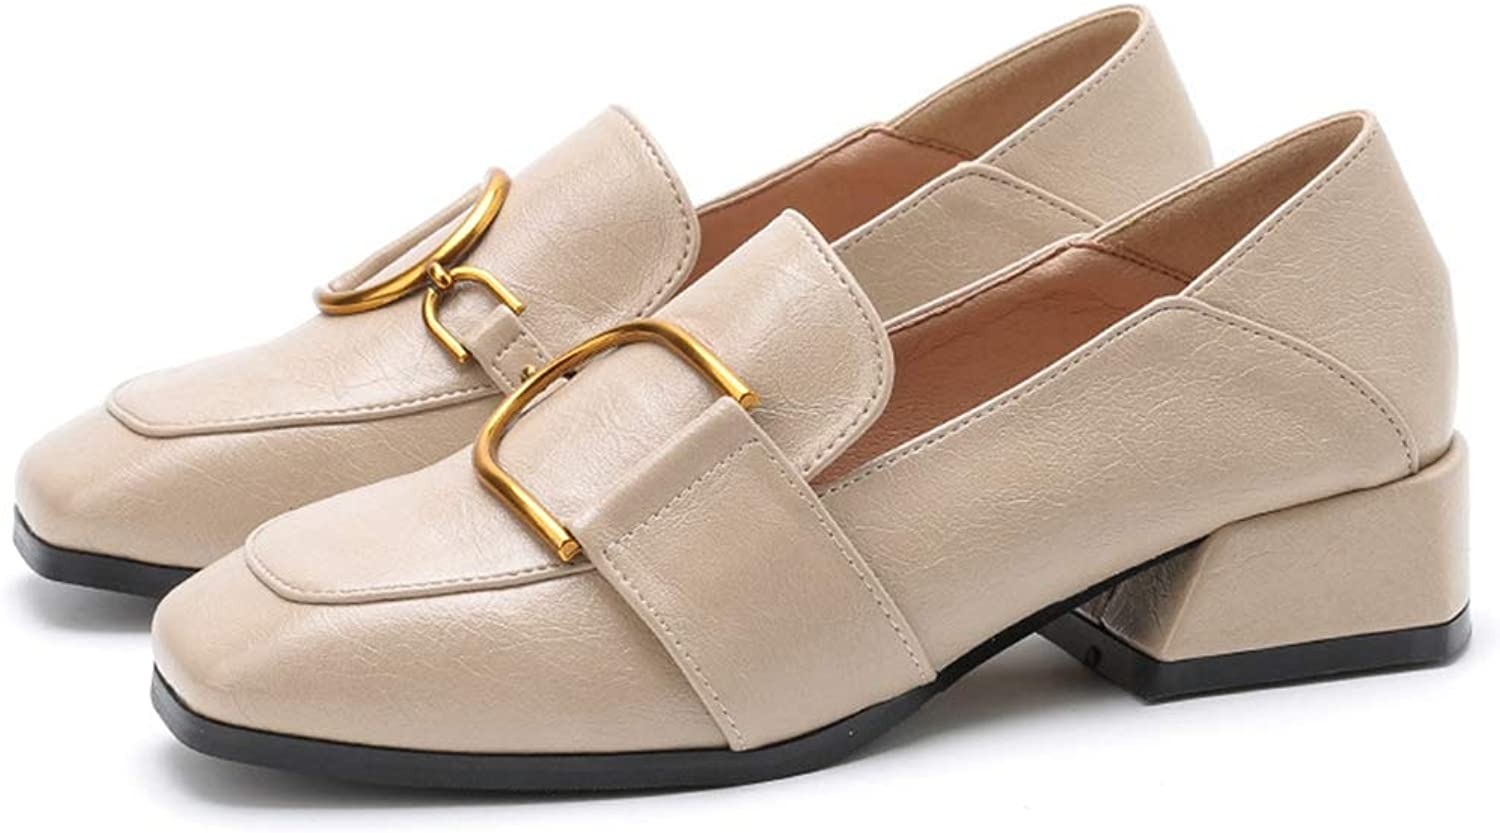 CYBLING Women's Penny Loafers Flat Low Heel Comfort Buckle Slip On Oxford shoes